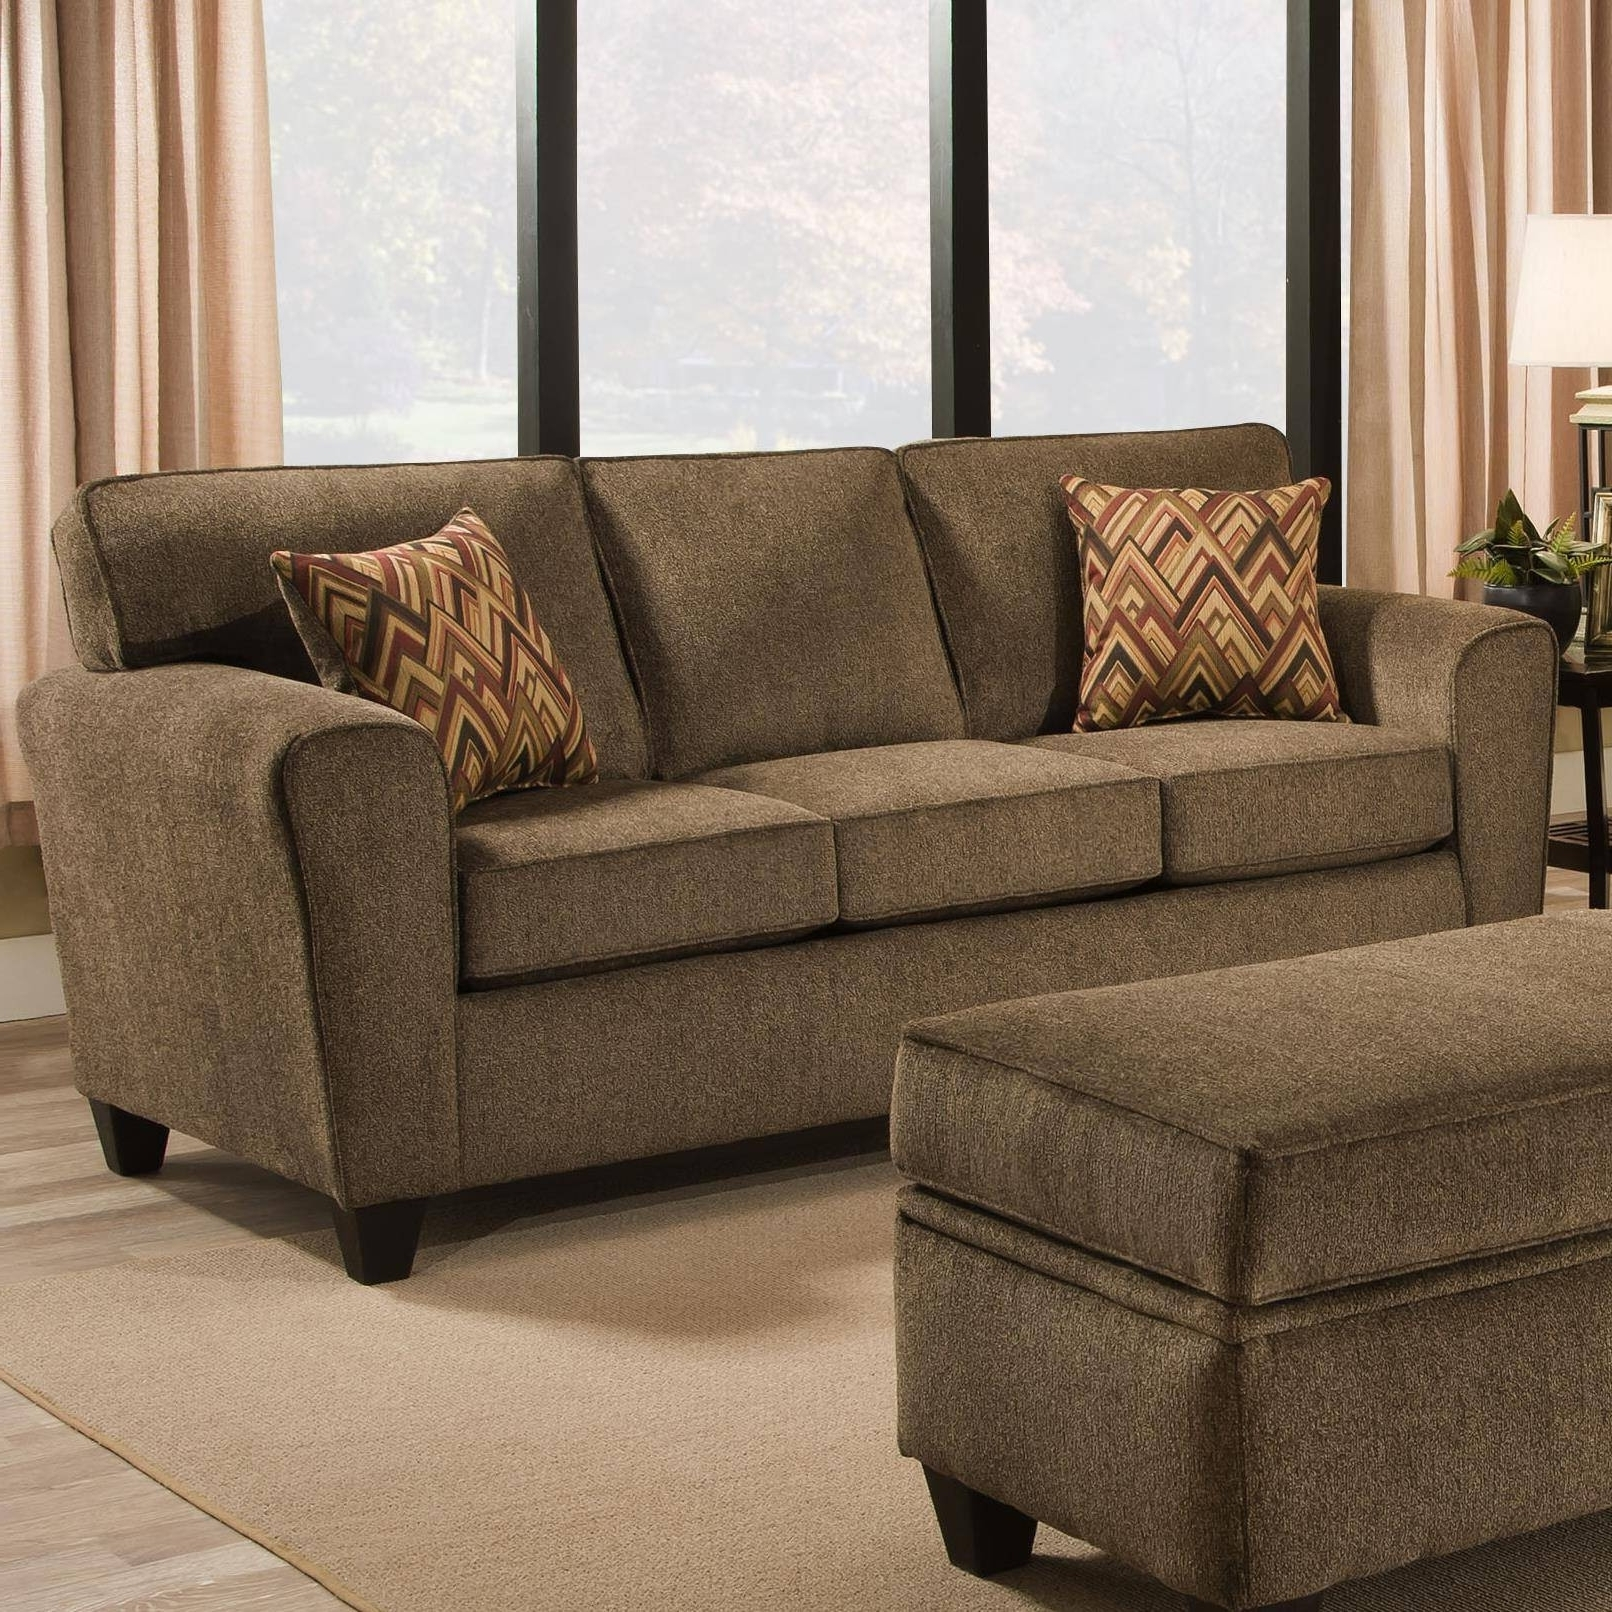 Down Filled Sofas With Regard To Most Current Furniture : Ethan Allen Down Filled Sofa Beautiful Sectional Sofas (View 4 of 15)